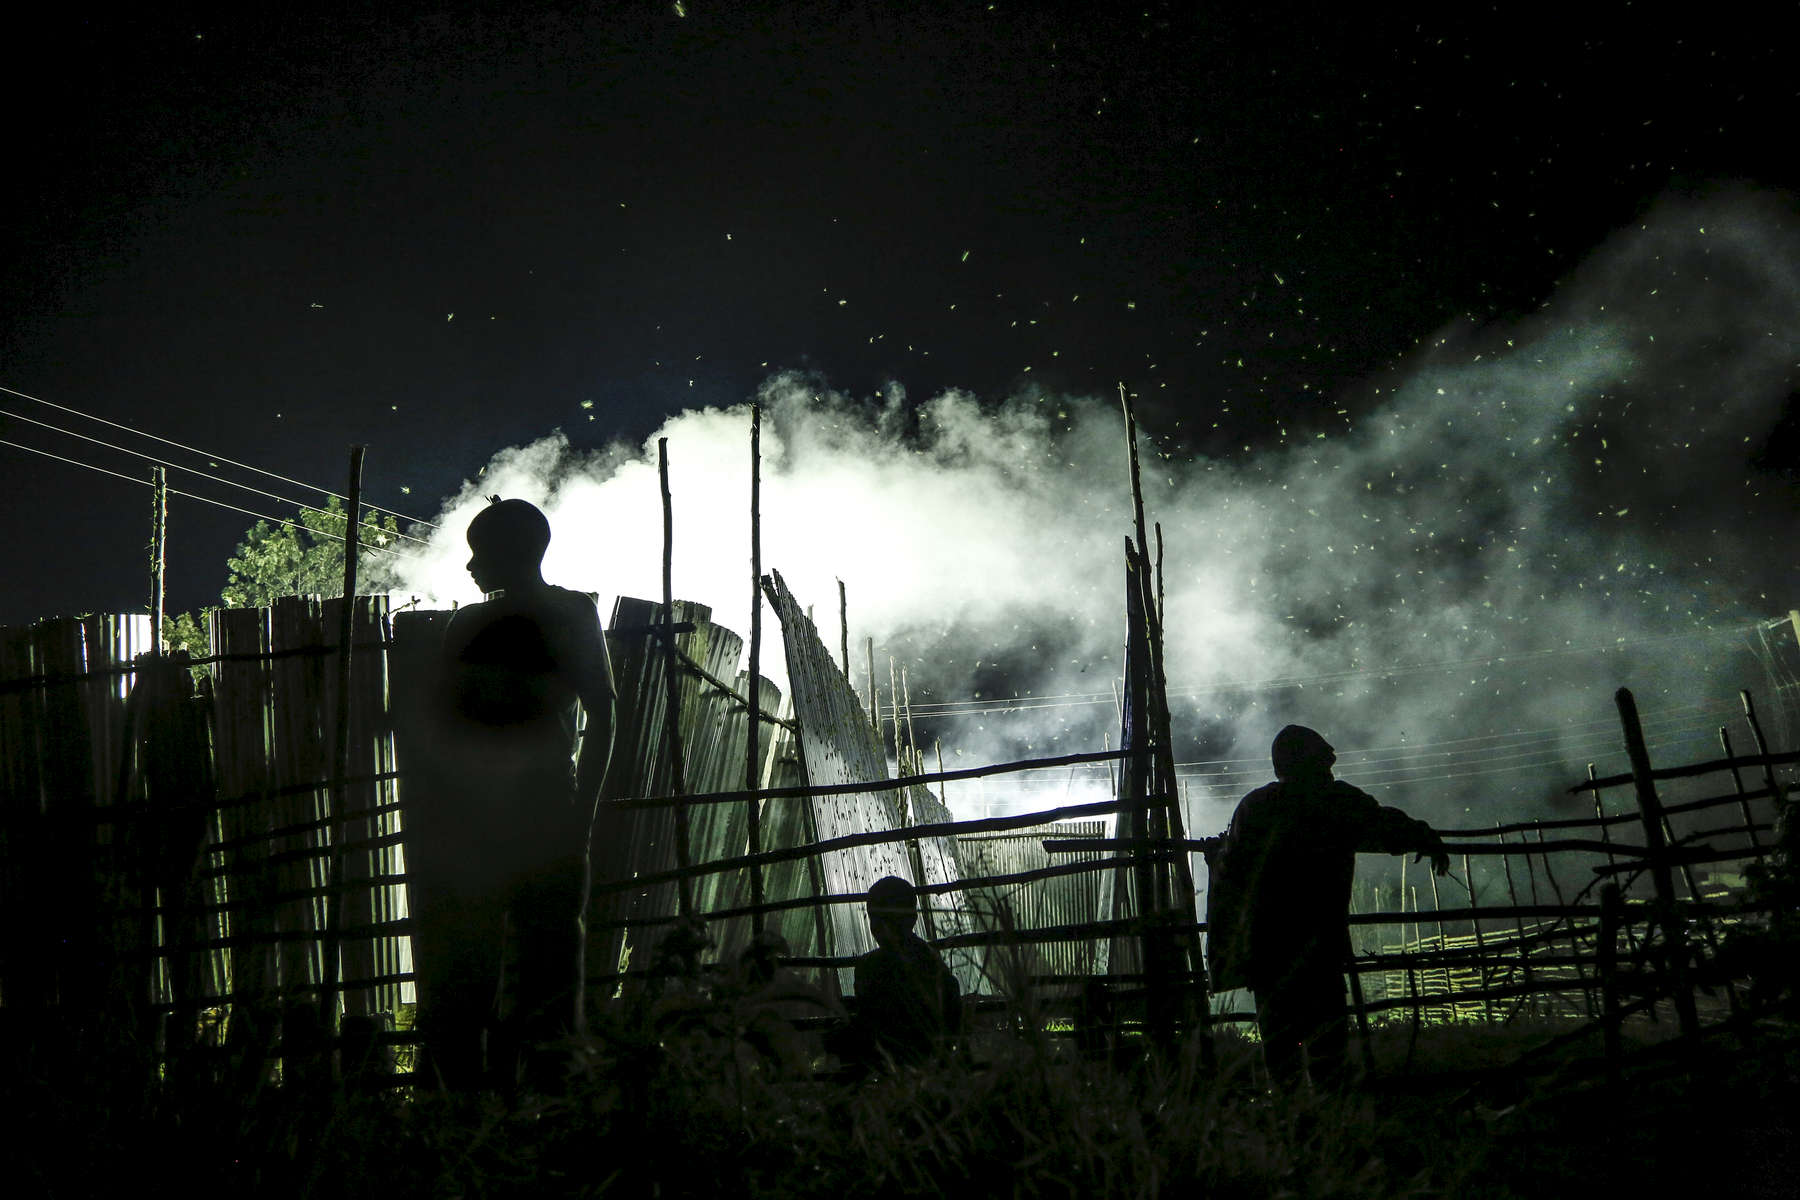 The grasshopper trappers, in the district of Kamwenge, Uganda, on December 3, 2018. During the rainy season Ugandans harvest grasshoppers at night, using wooden scaffolding, iron sheets, lights and smoke. Many people gather around those traps, trying to catch the grasshoppers that managed to escape the baits, This sought after snack is served fried or boiled.